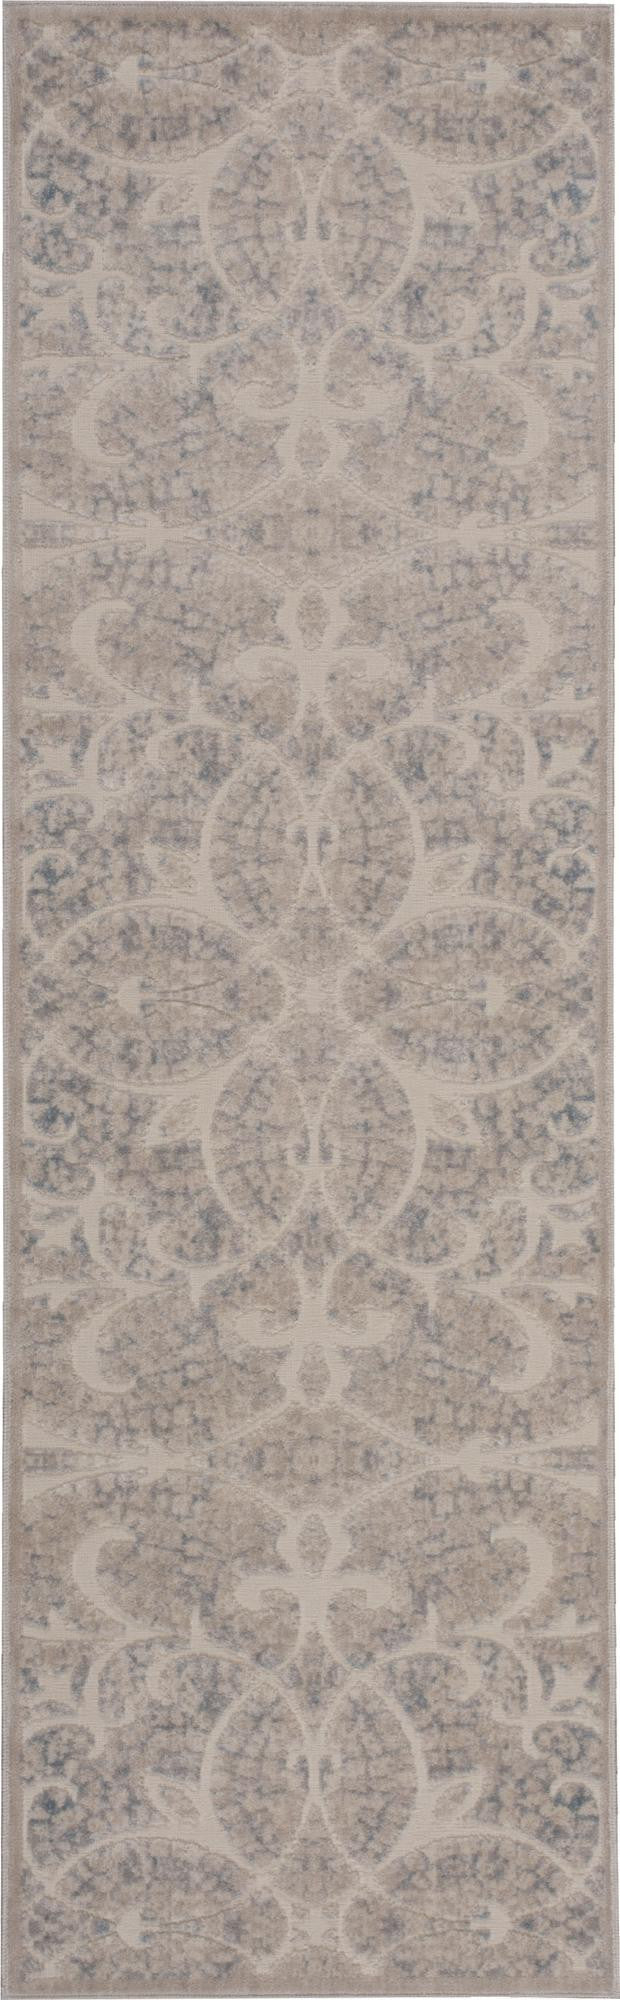 Nourison Graphic Illusions Beige Sand Area Rug GIL05 BGSND